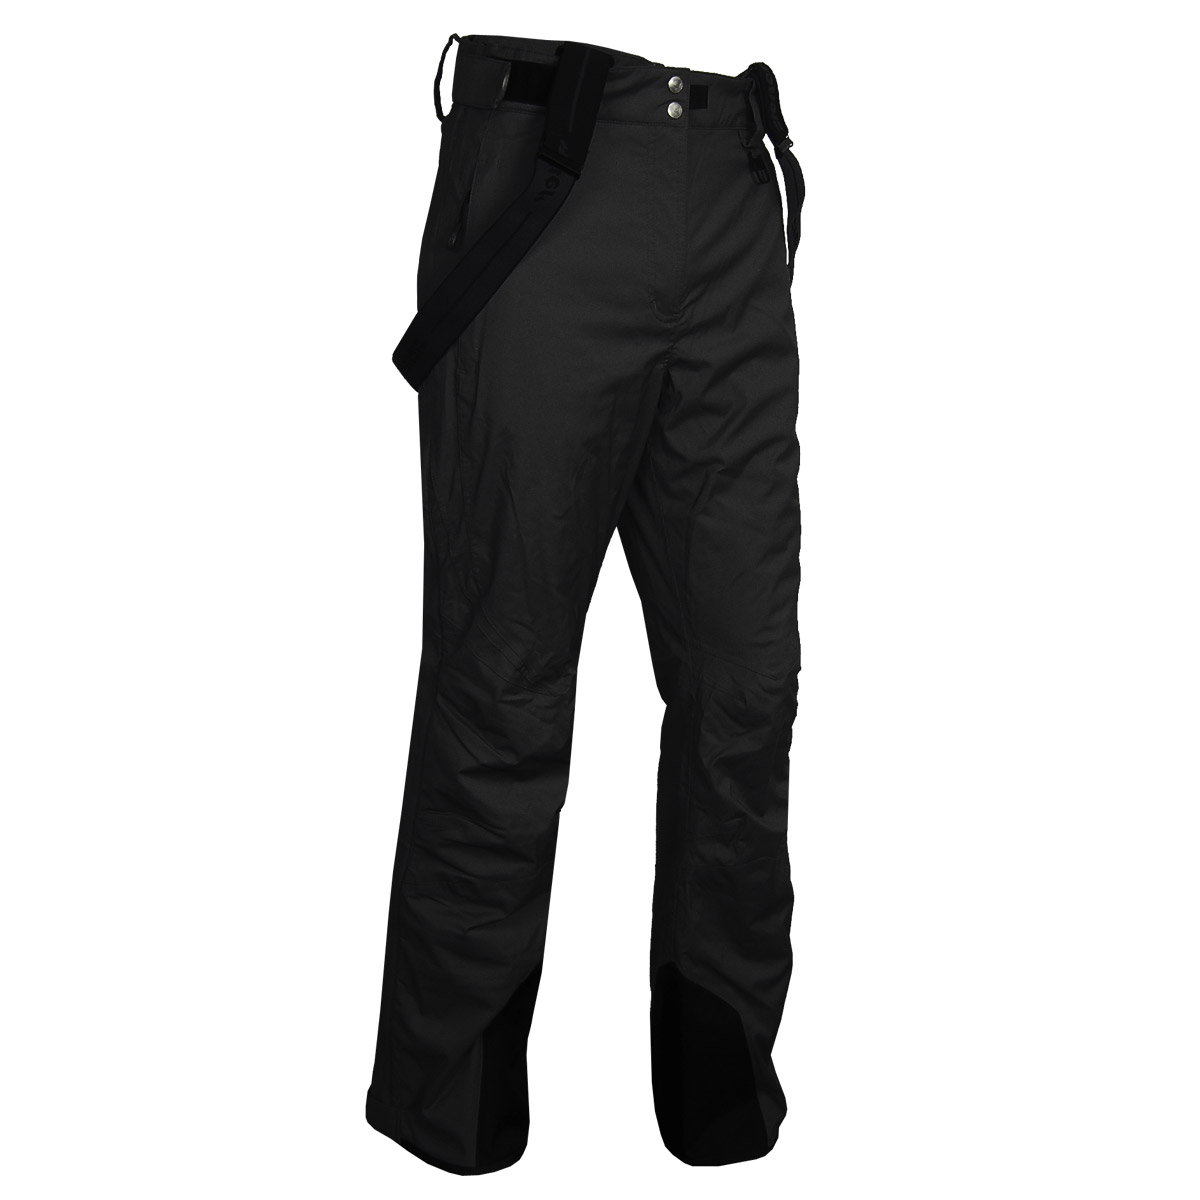 ziener tundra winter pant damen skihose snowboardhose 064127. Black Bedroom Furniture Sets. Home Design Ideas